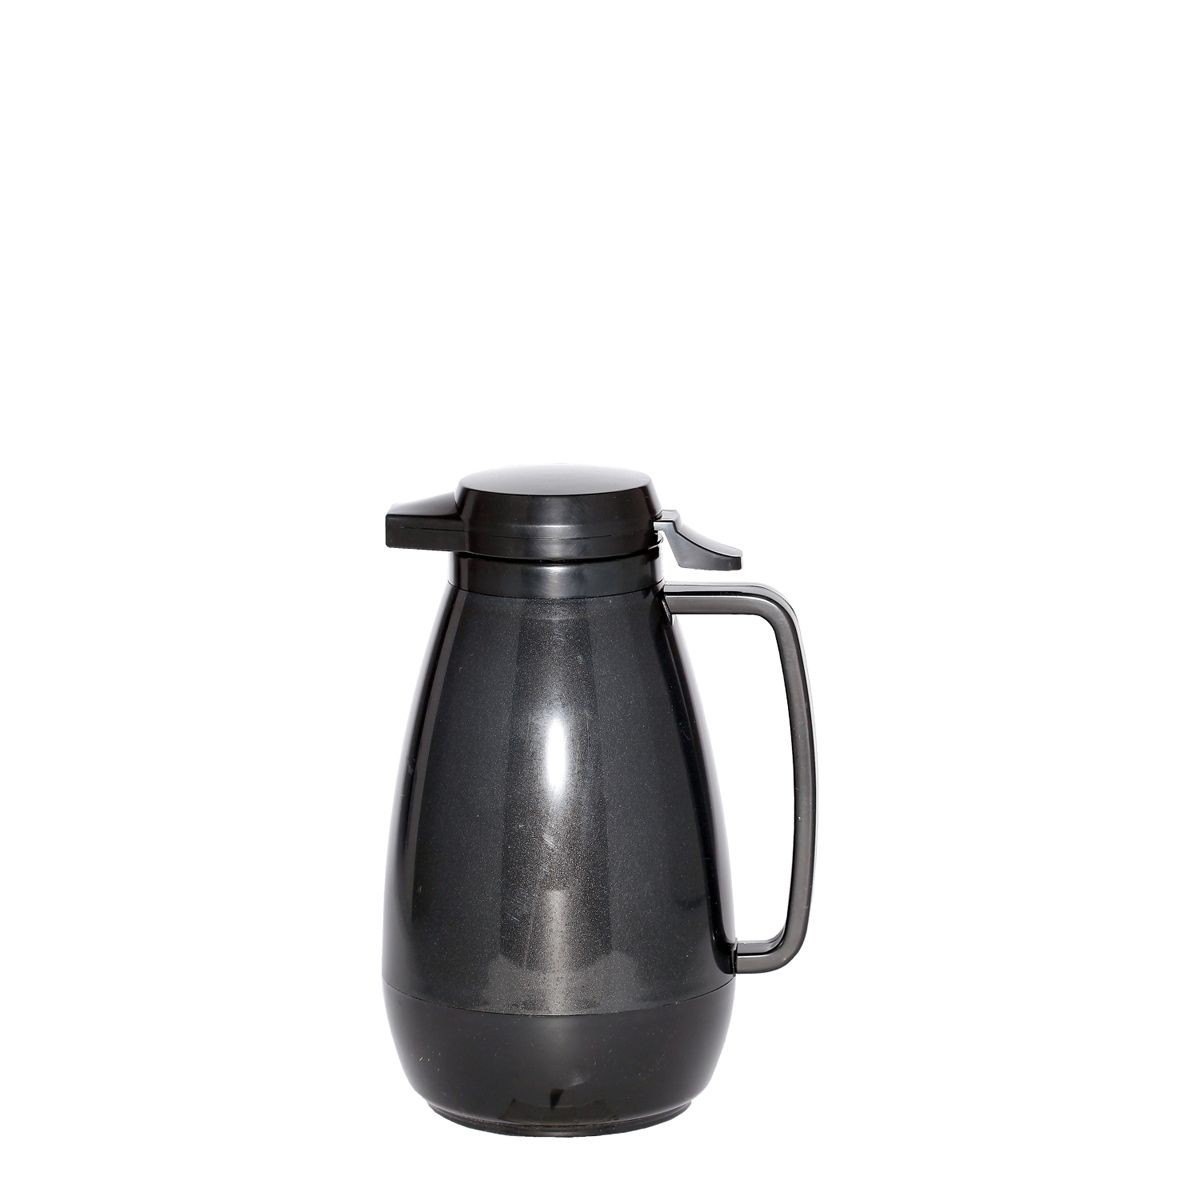 Service Ideas PB101BL Thermo-Serv Black Push Button Coffee Server, 1 Liter (34 oz.)